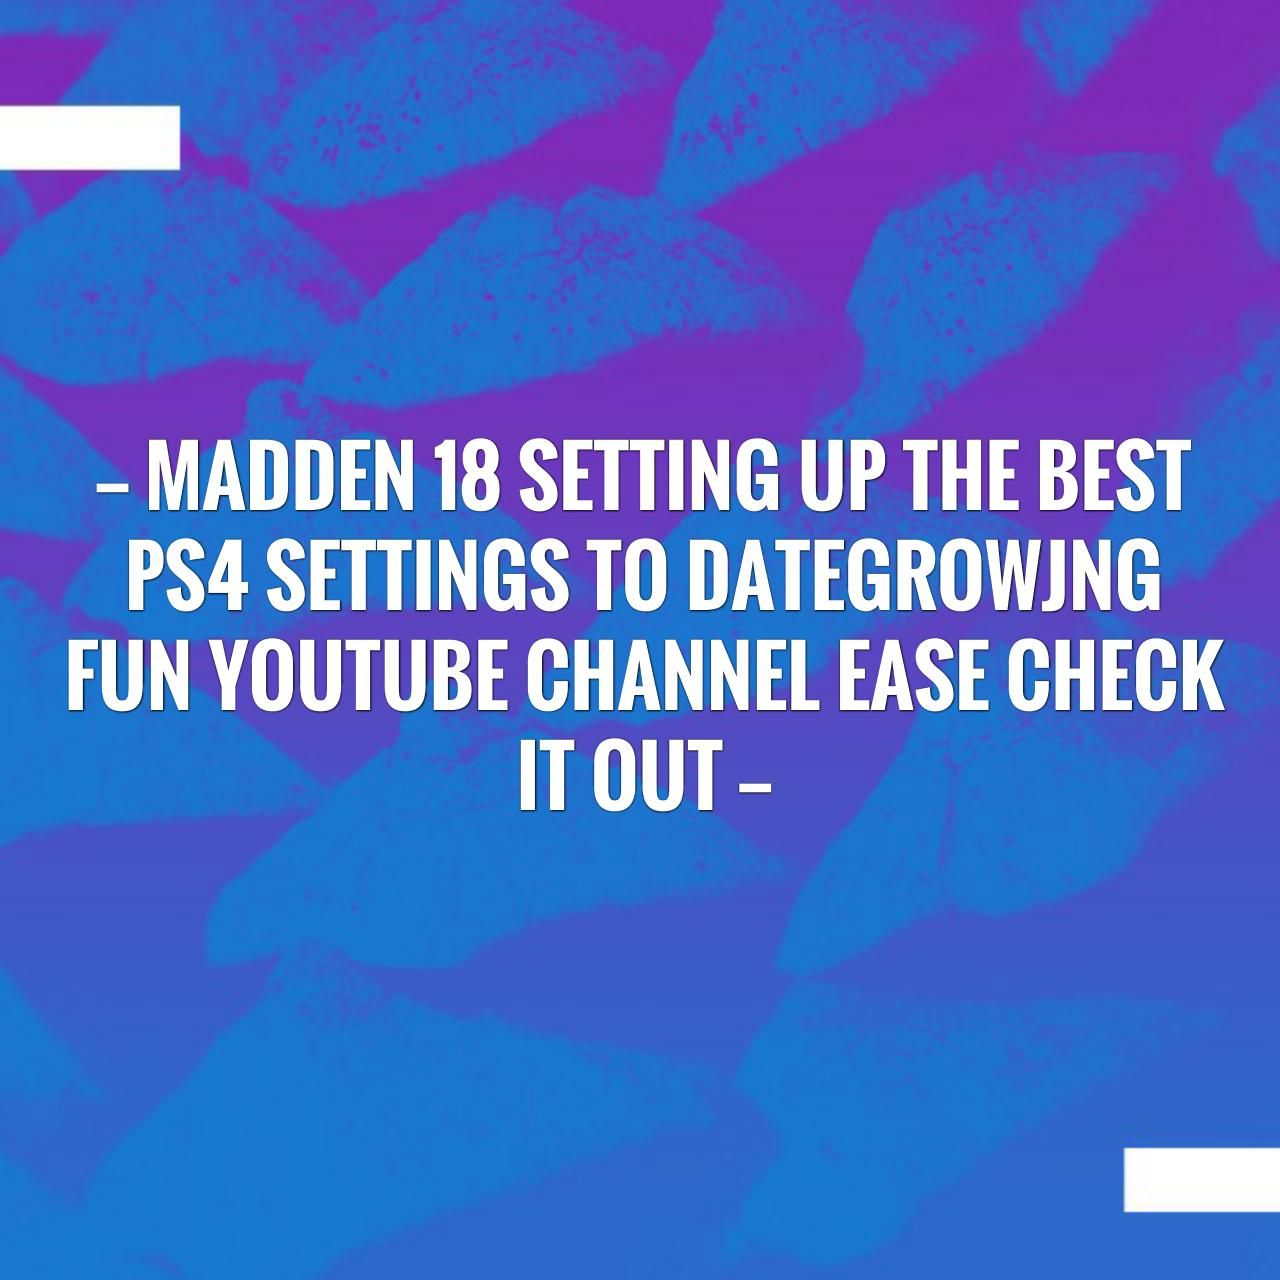 Give this a read madden 18 setting up the best ps4